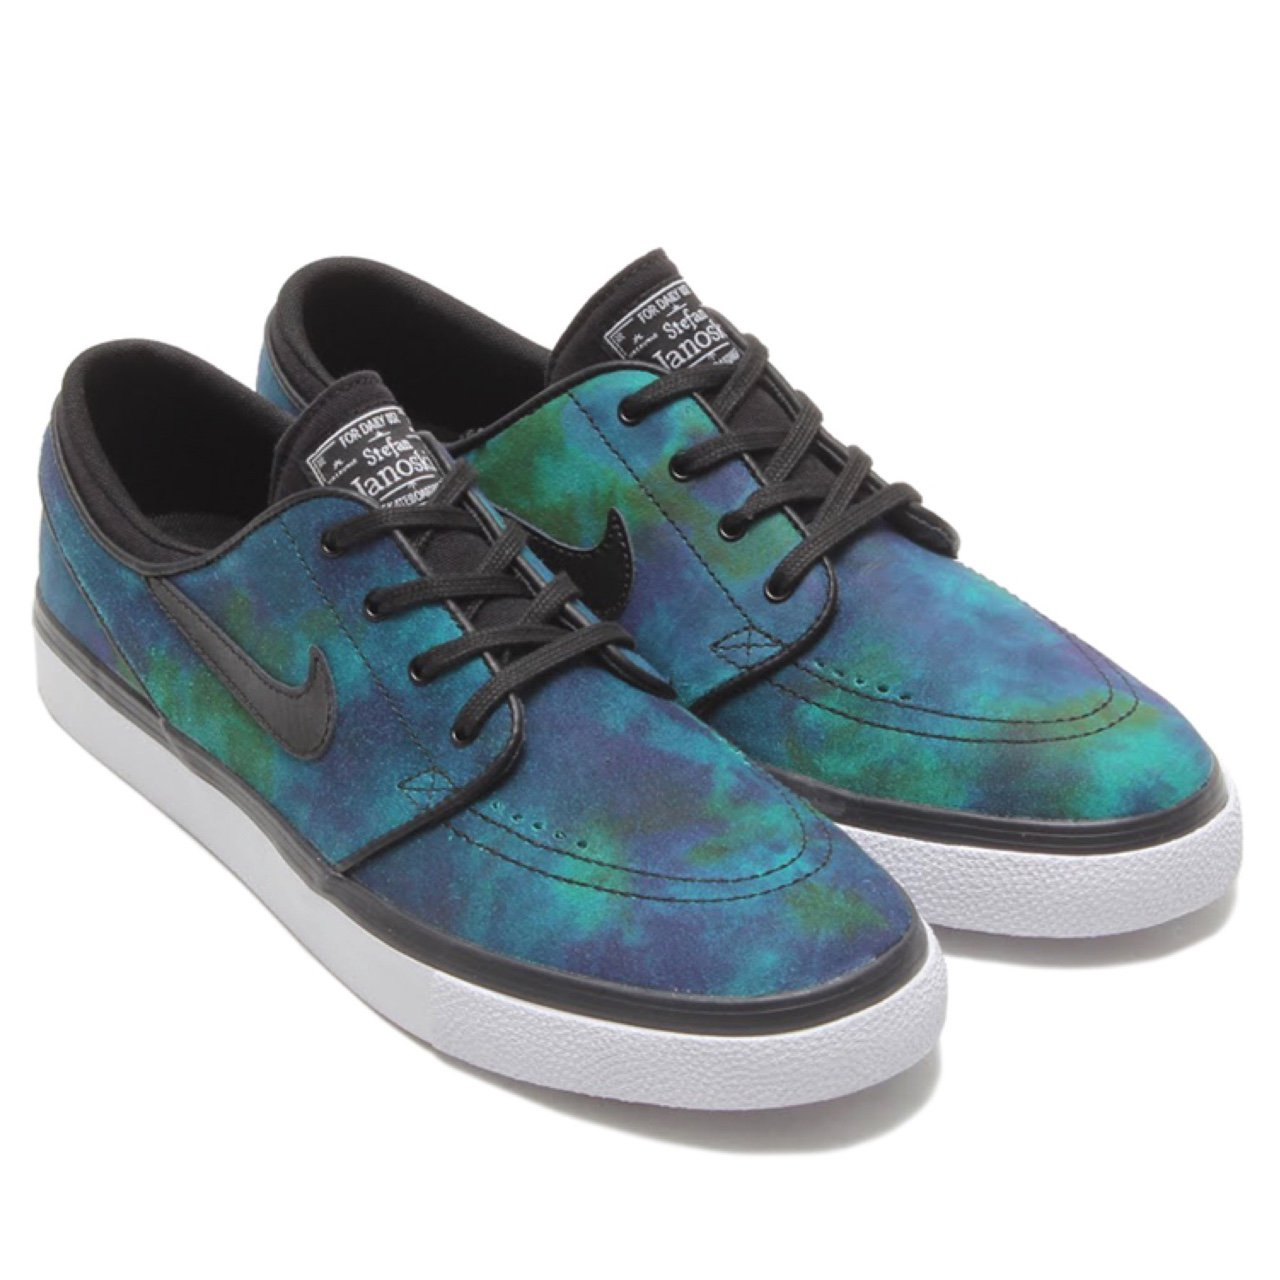 "c1be06c21f0d Nike SB Zoom Stefan Janoski ""Nebula Galaxy"" shoes trainers. - Depop"